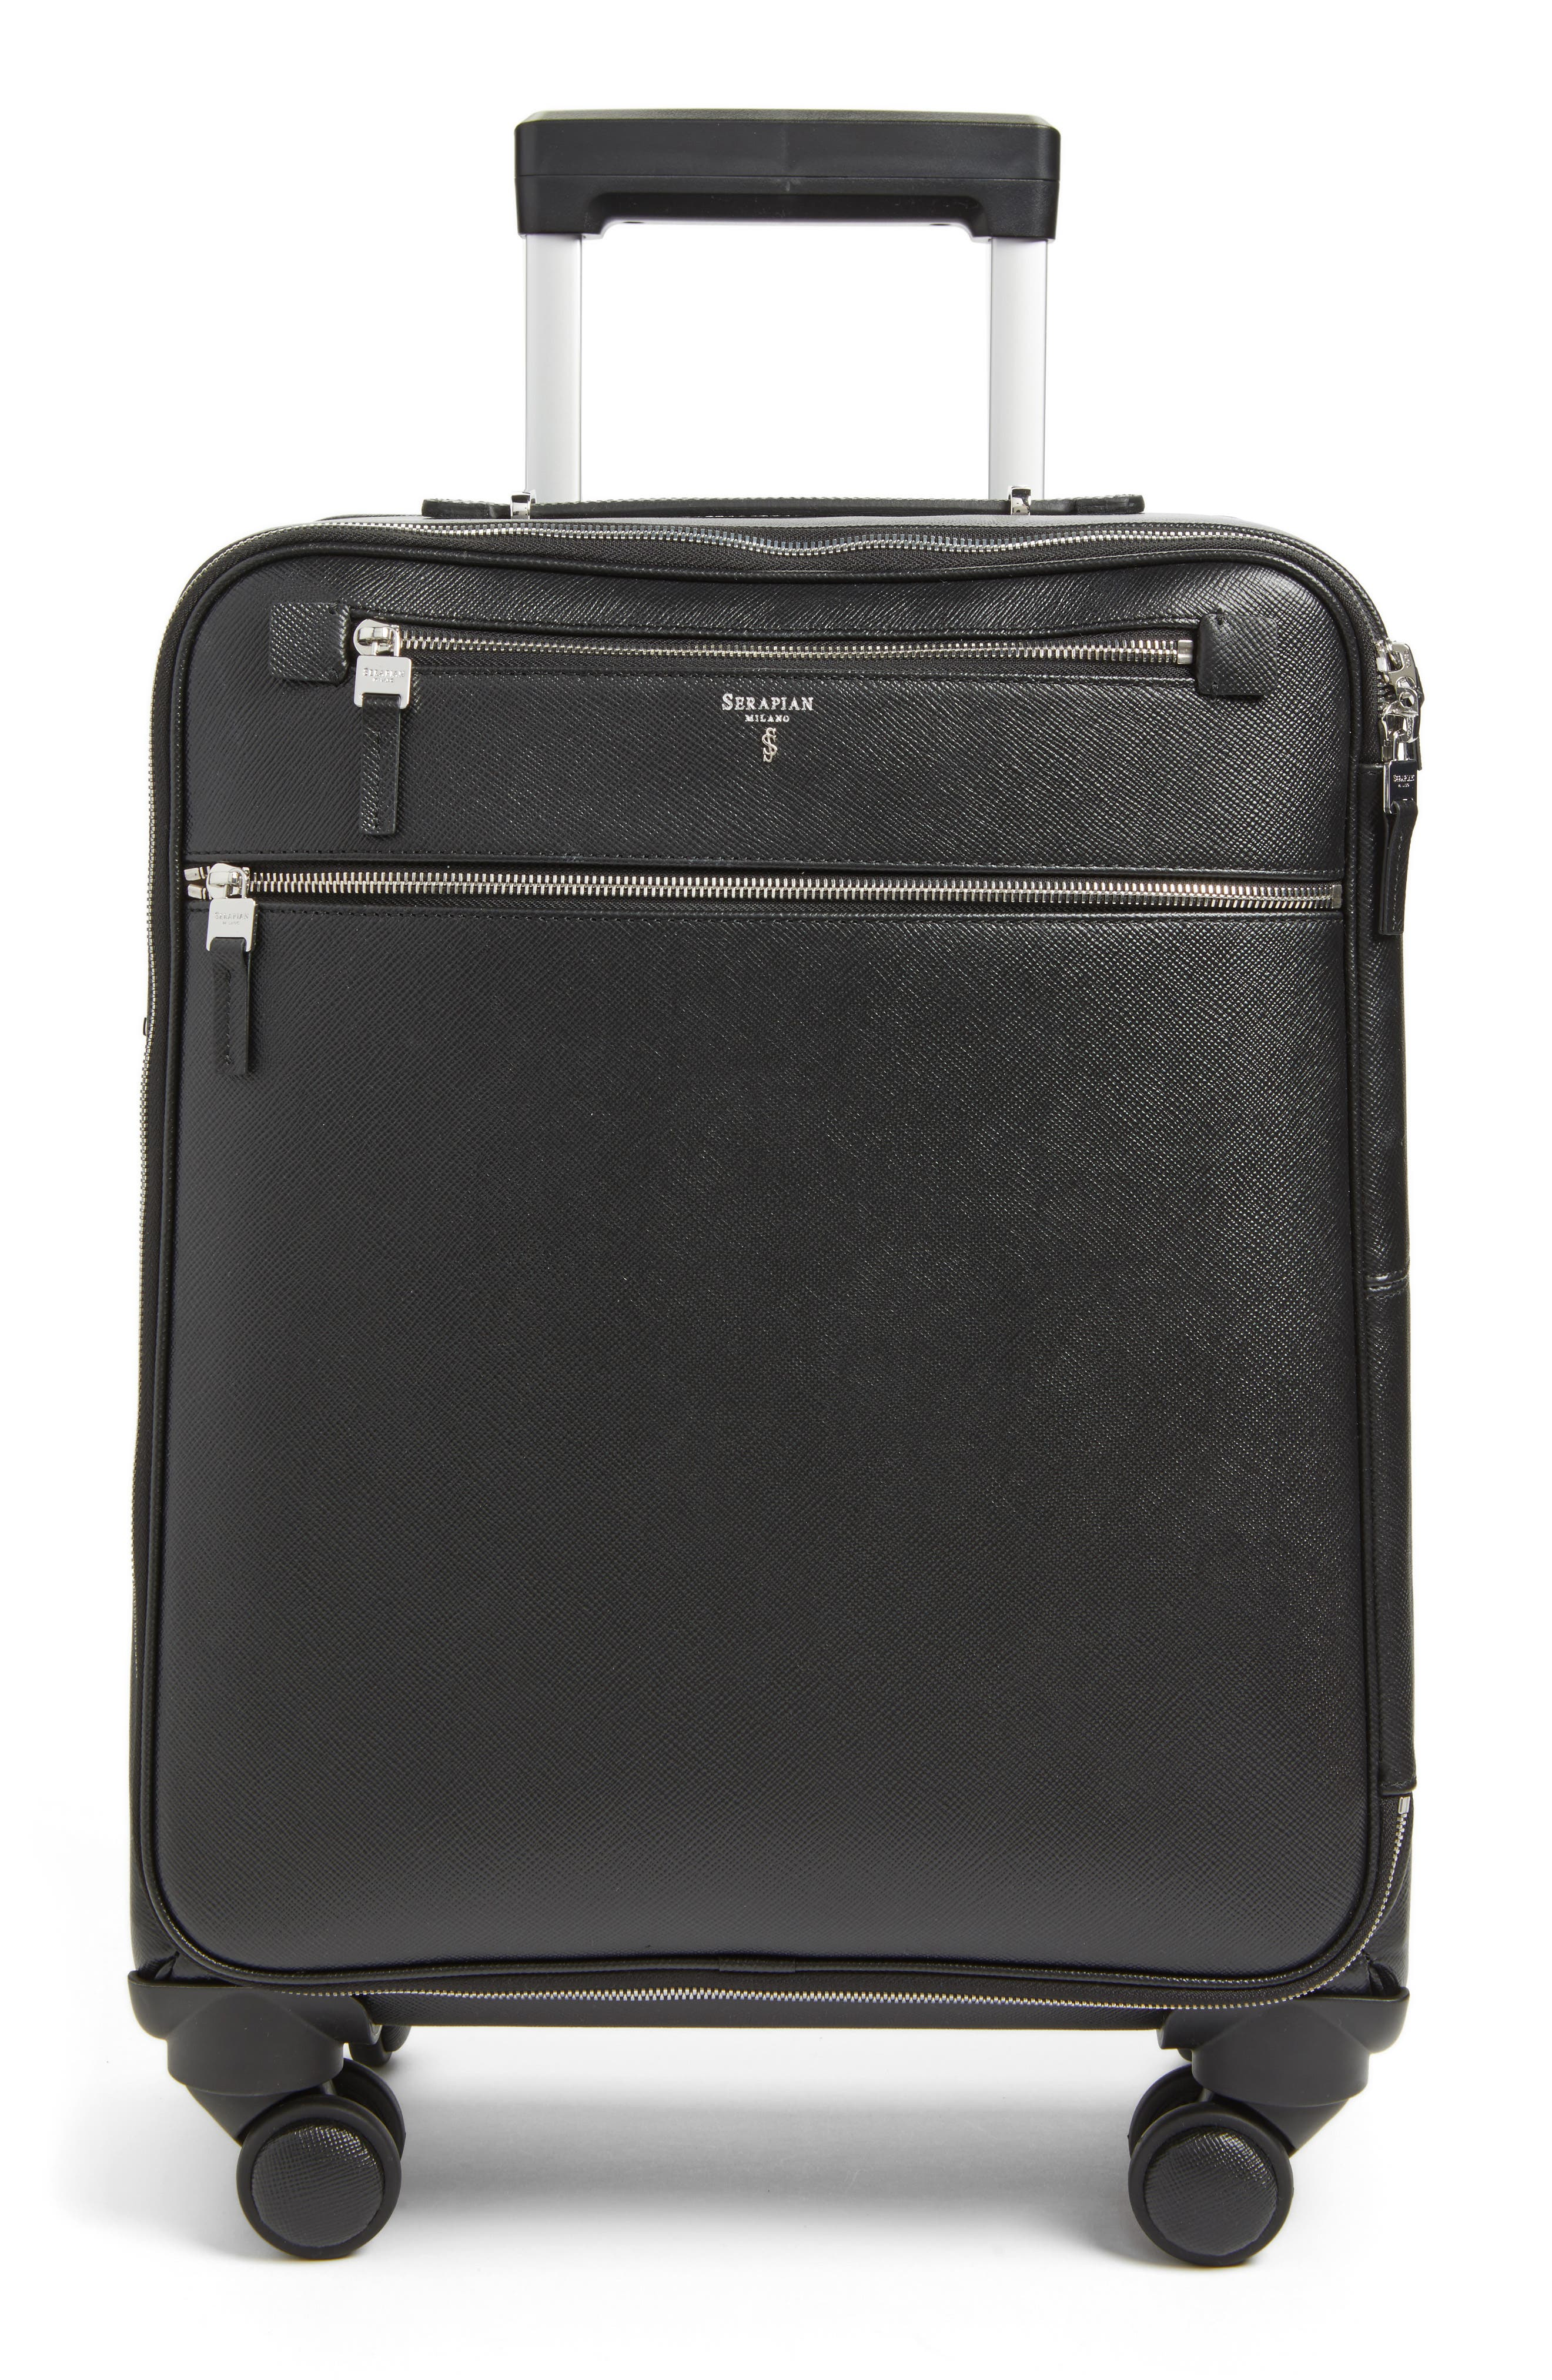 Trolley 18-Inch Spinner Wheeled Carry-On Suitcase,                             Main thumbnail 1, color,                             BLACK